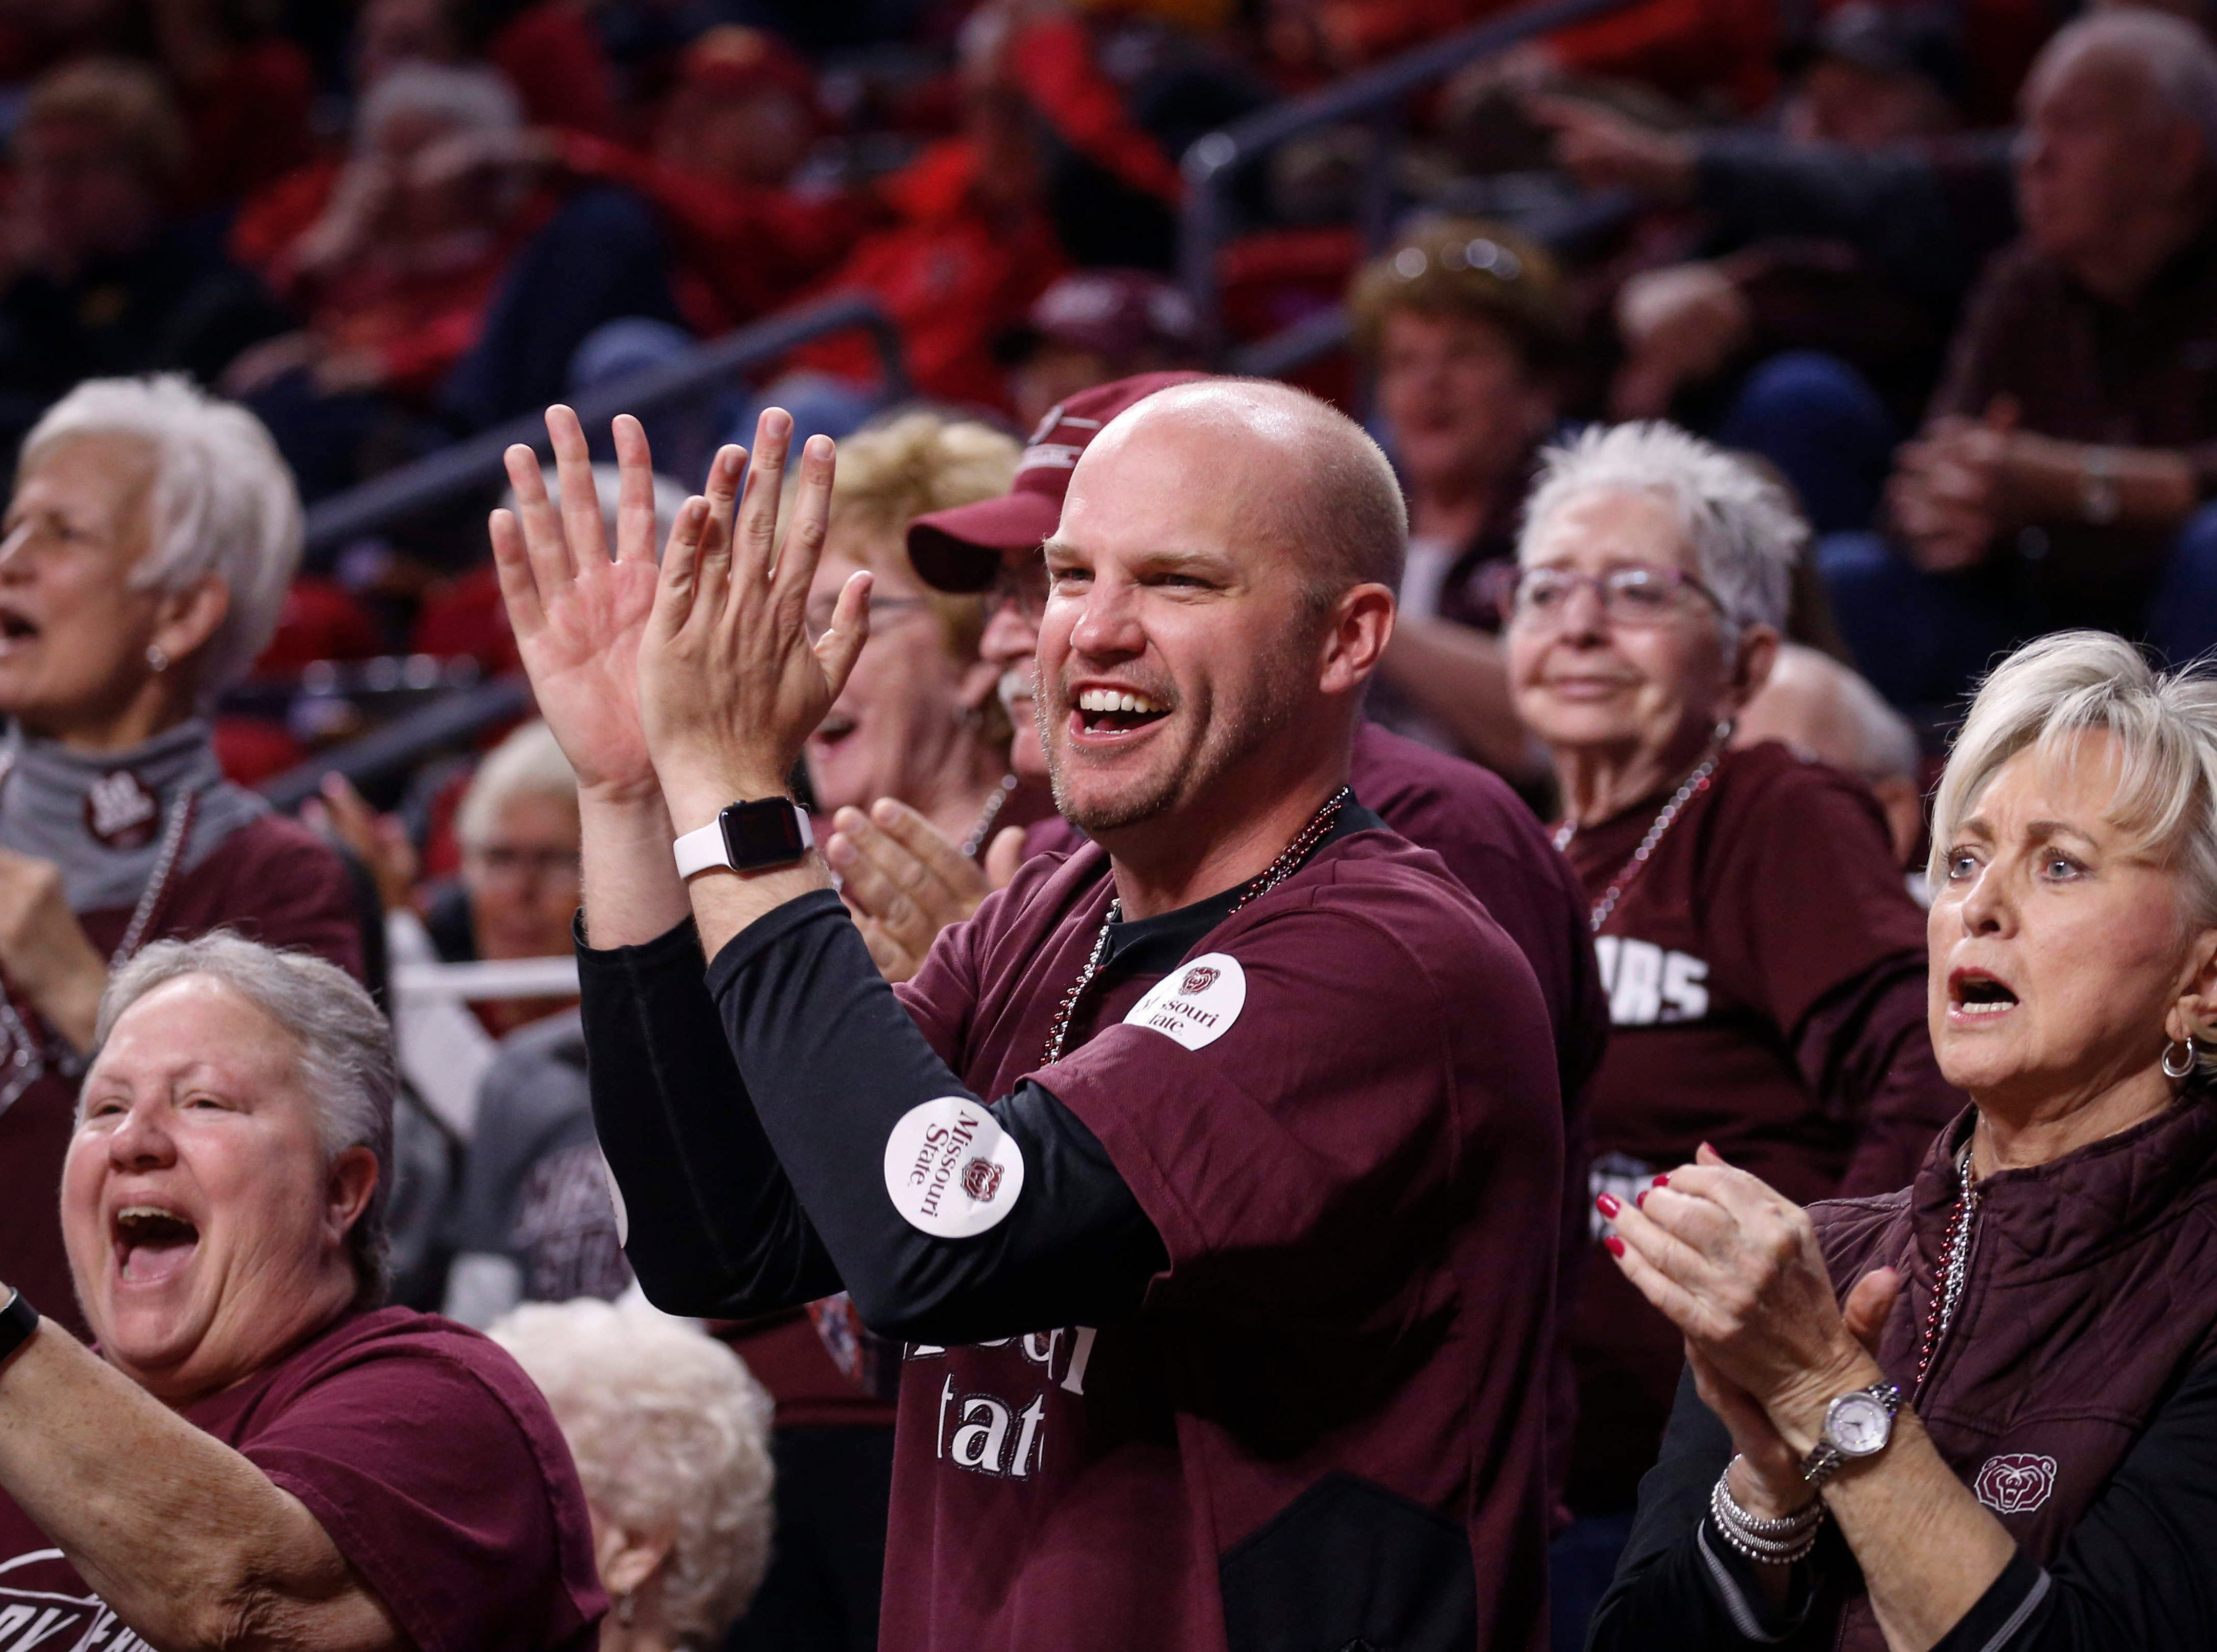 Missouri State fans cheer during the second quarter against DePaul on Saturday, March 23, 2019, at Hilton Coliseum in Ames.